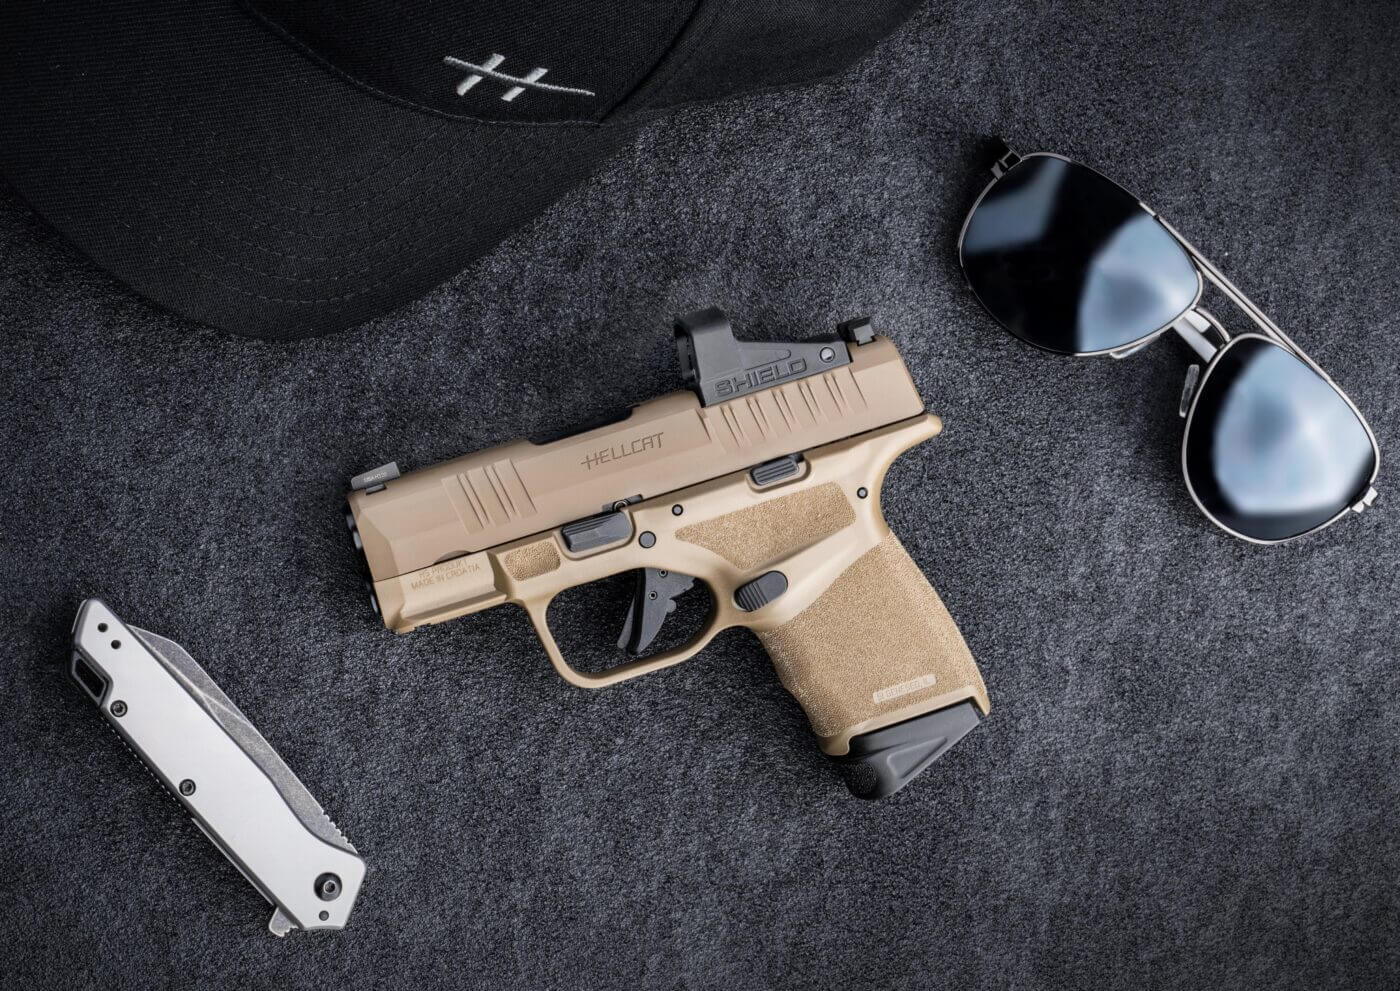 The FDE Hellcat with EDC gear